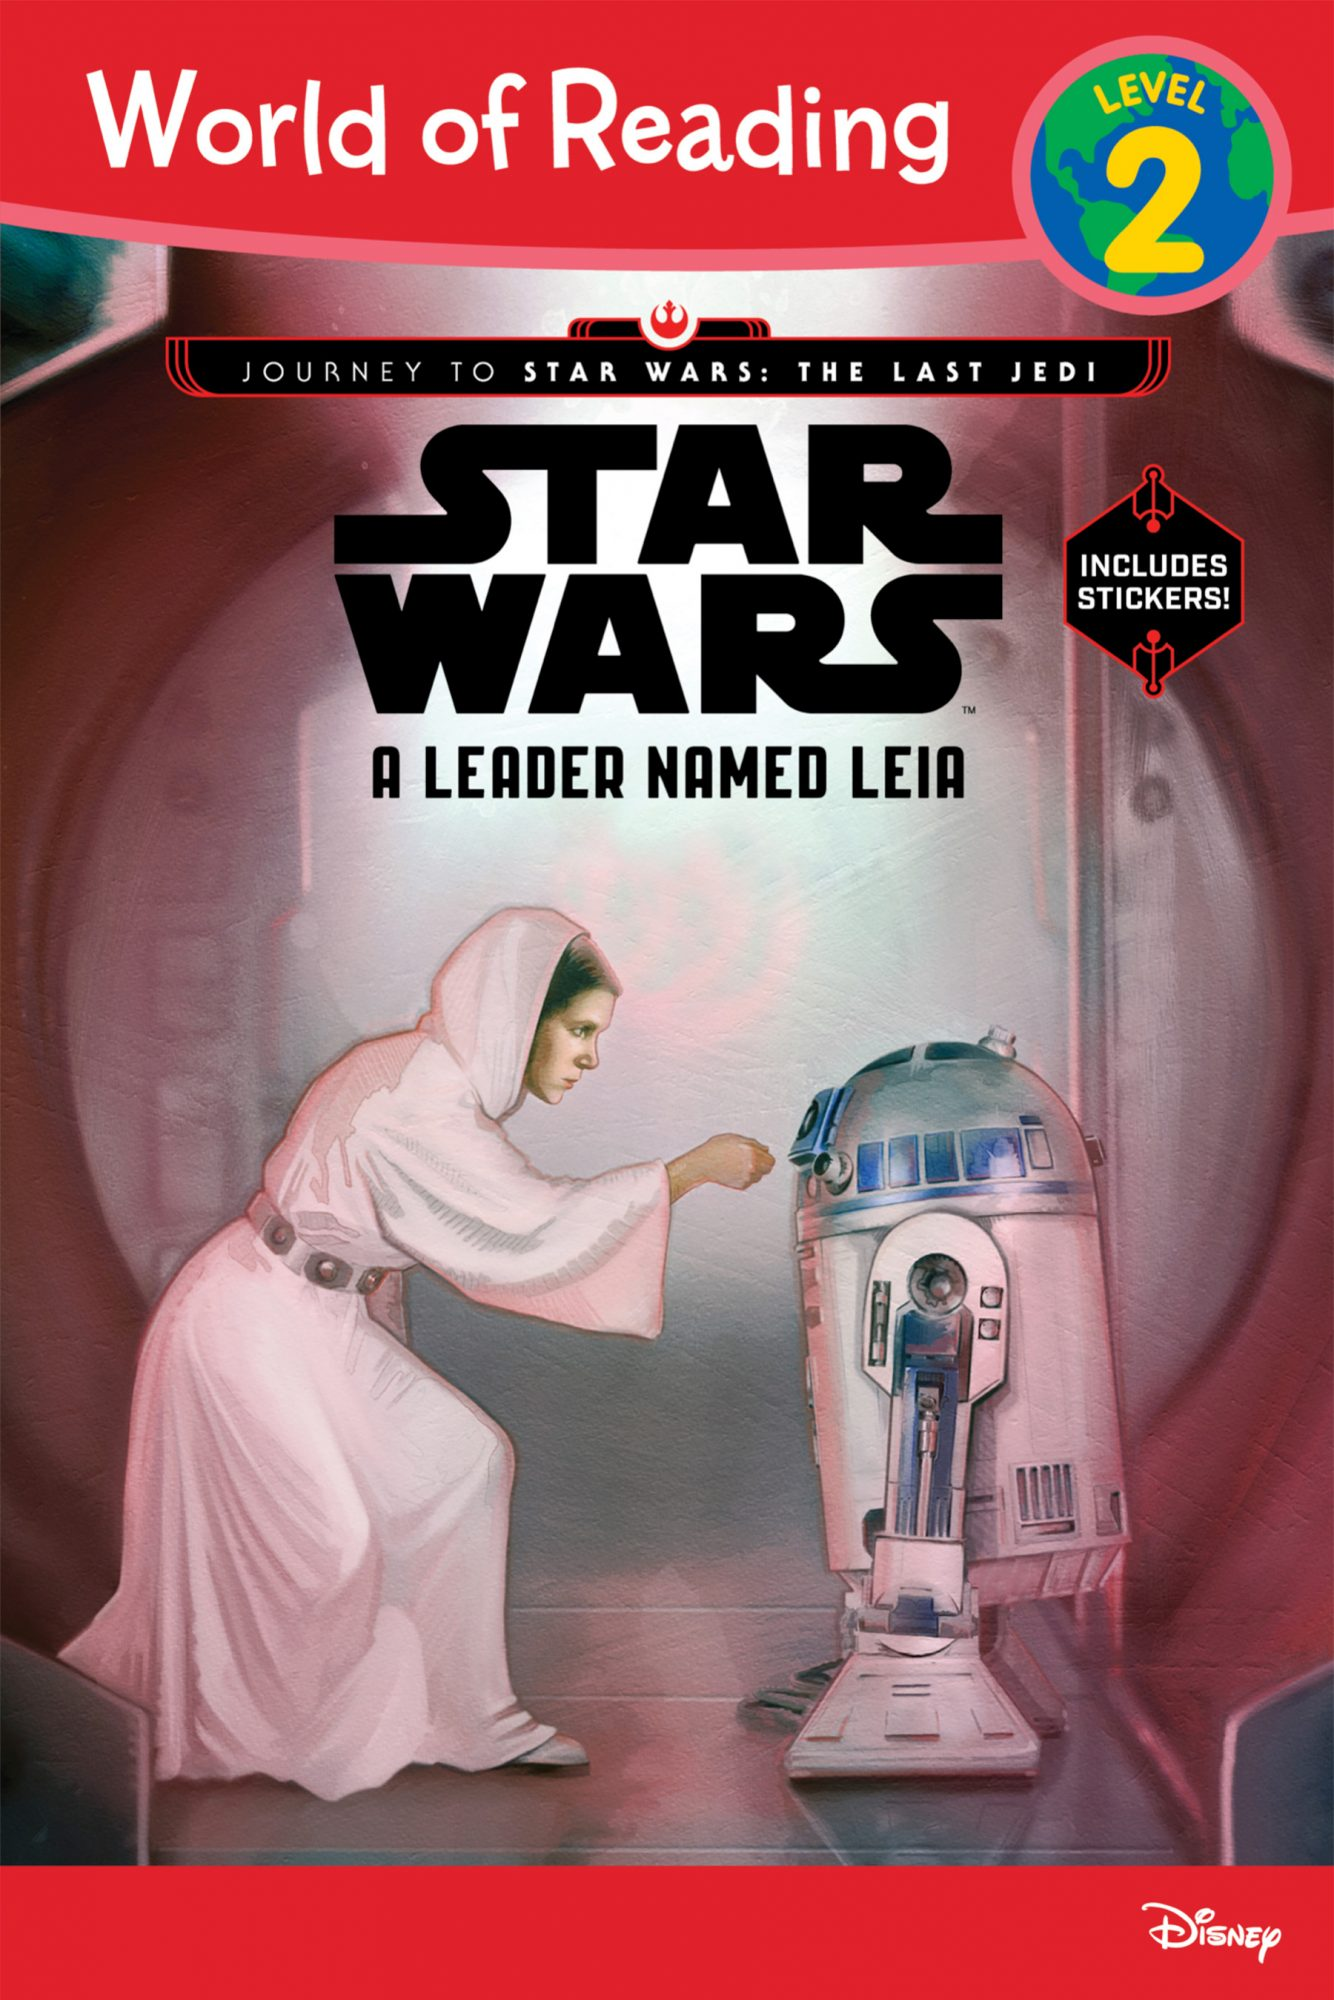 A Leader Named Leia, written by Jennifer Heddle and illustrated by Brian Rood